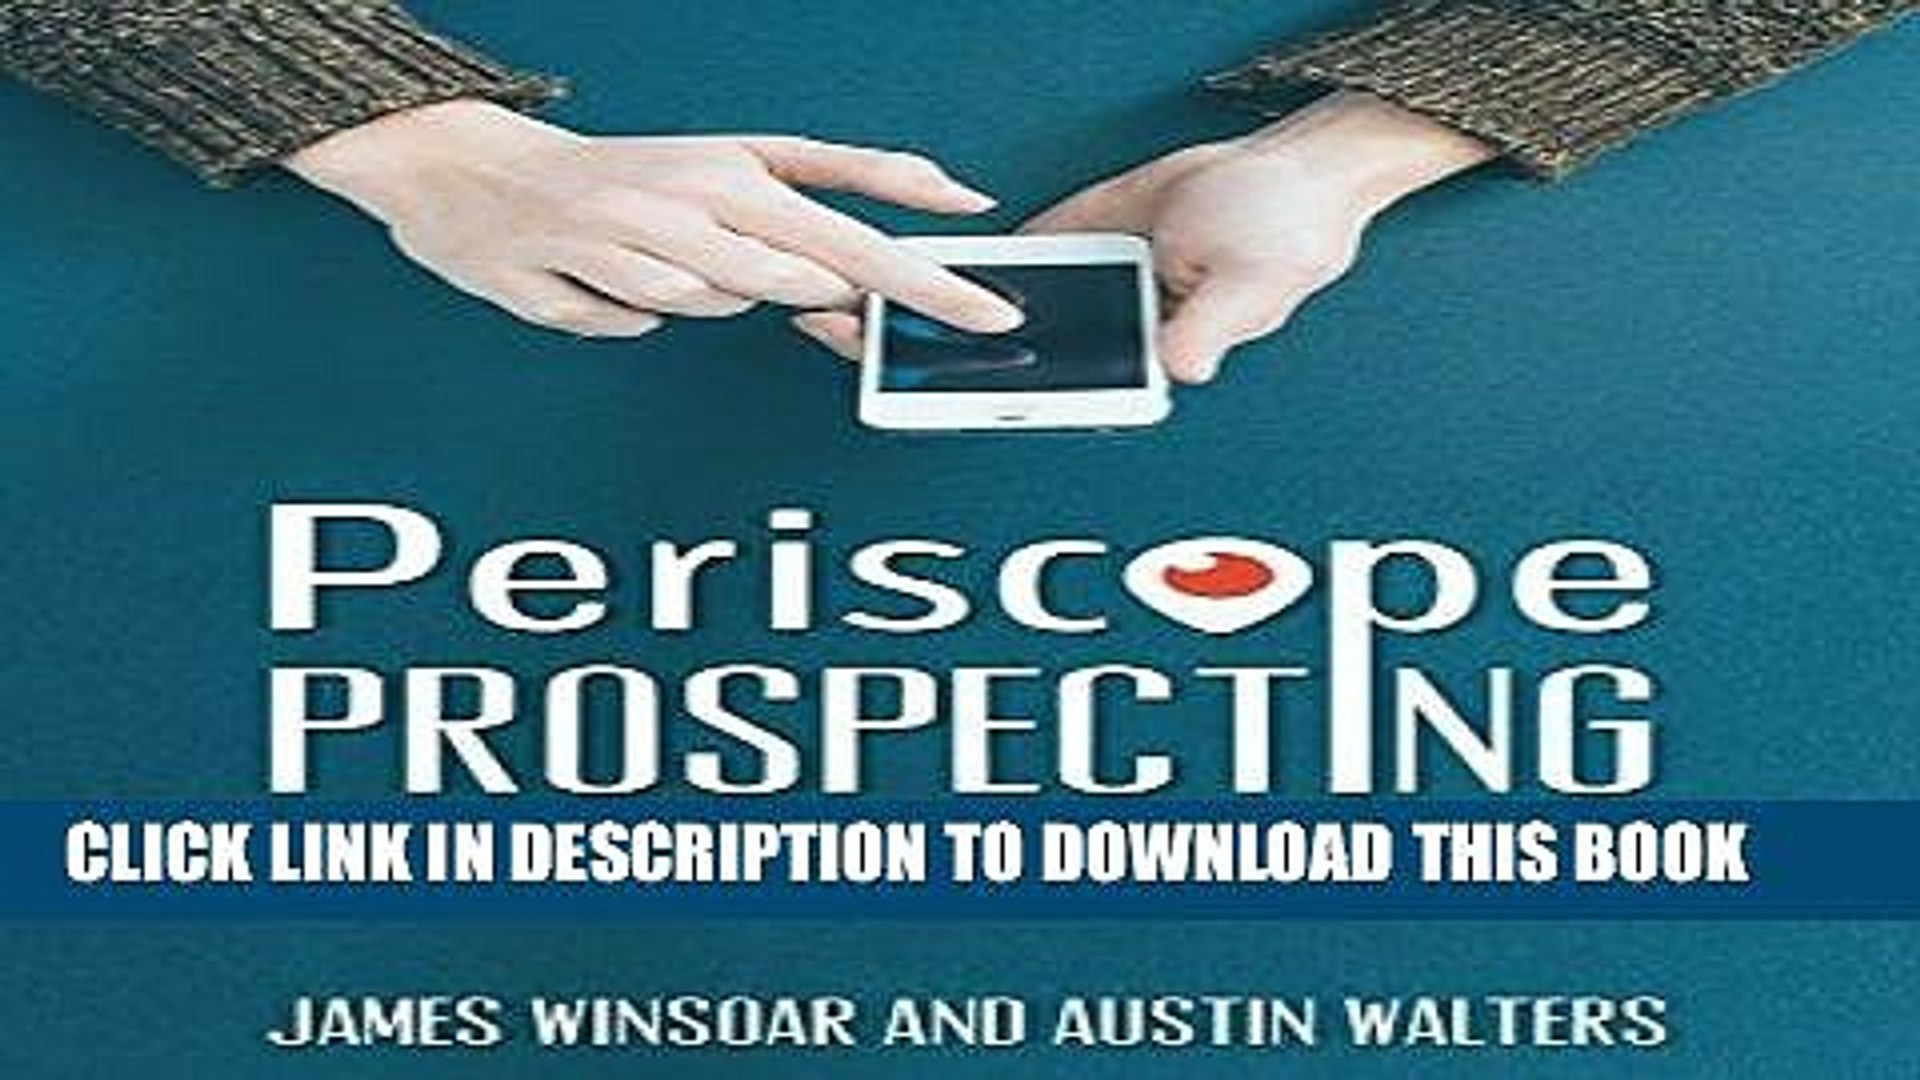 Best Seller Periscope Prospecting Plan: How to generate leads and get Periscope followers for